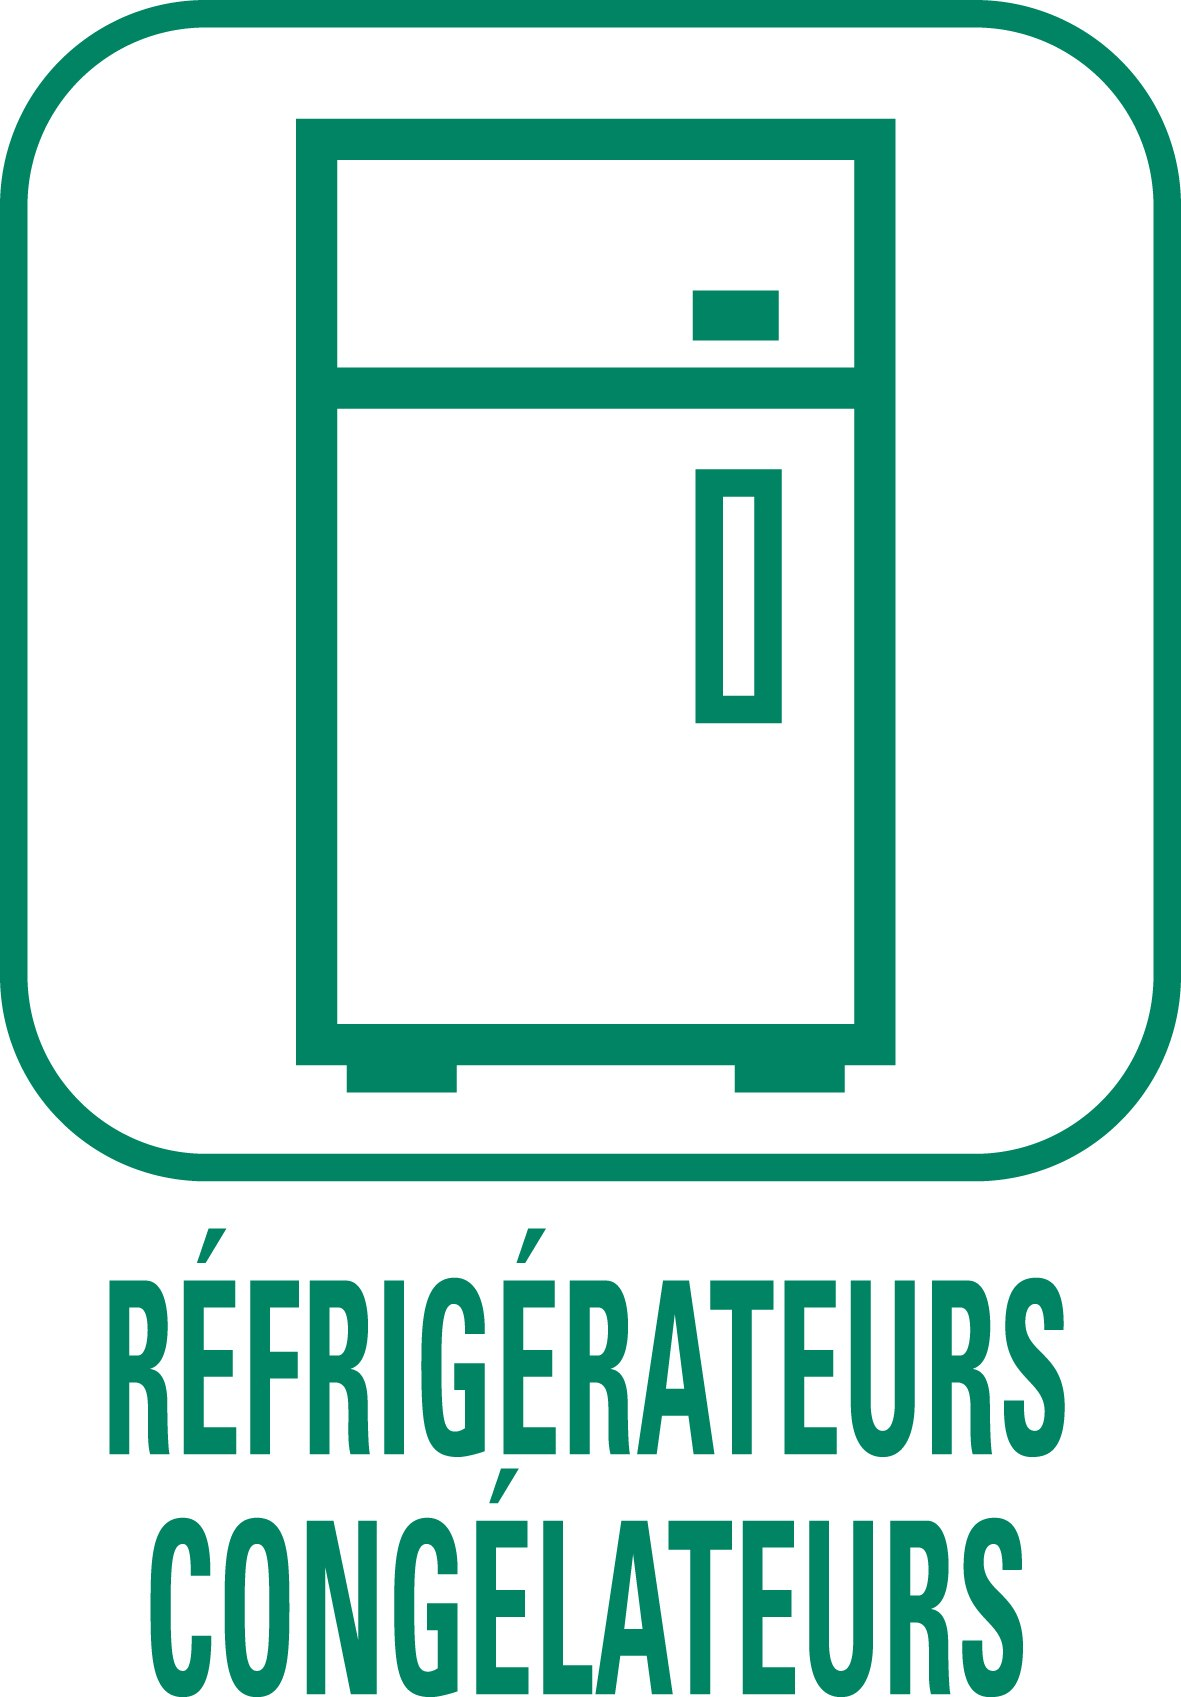 r376 9 refrigerateurs congelateurs 2